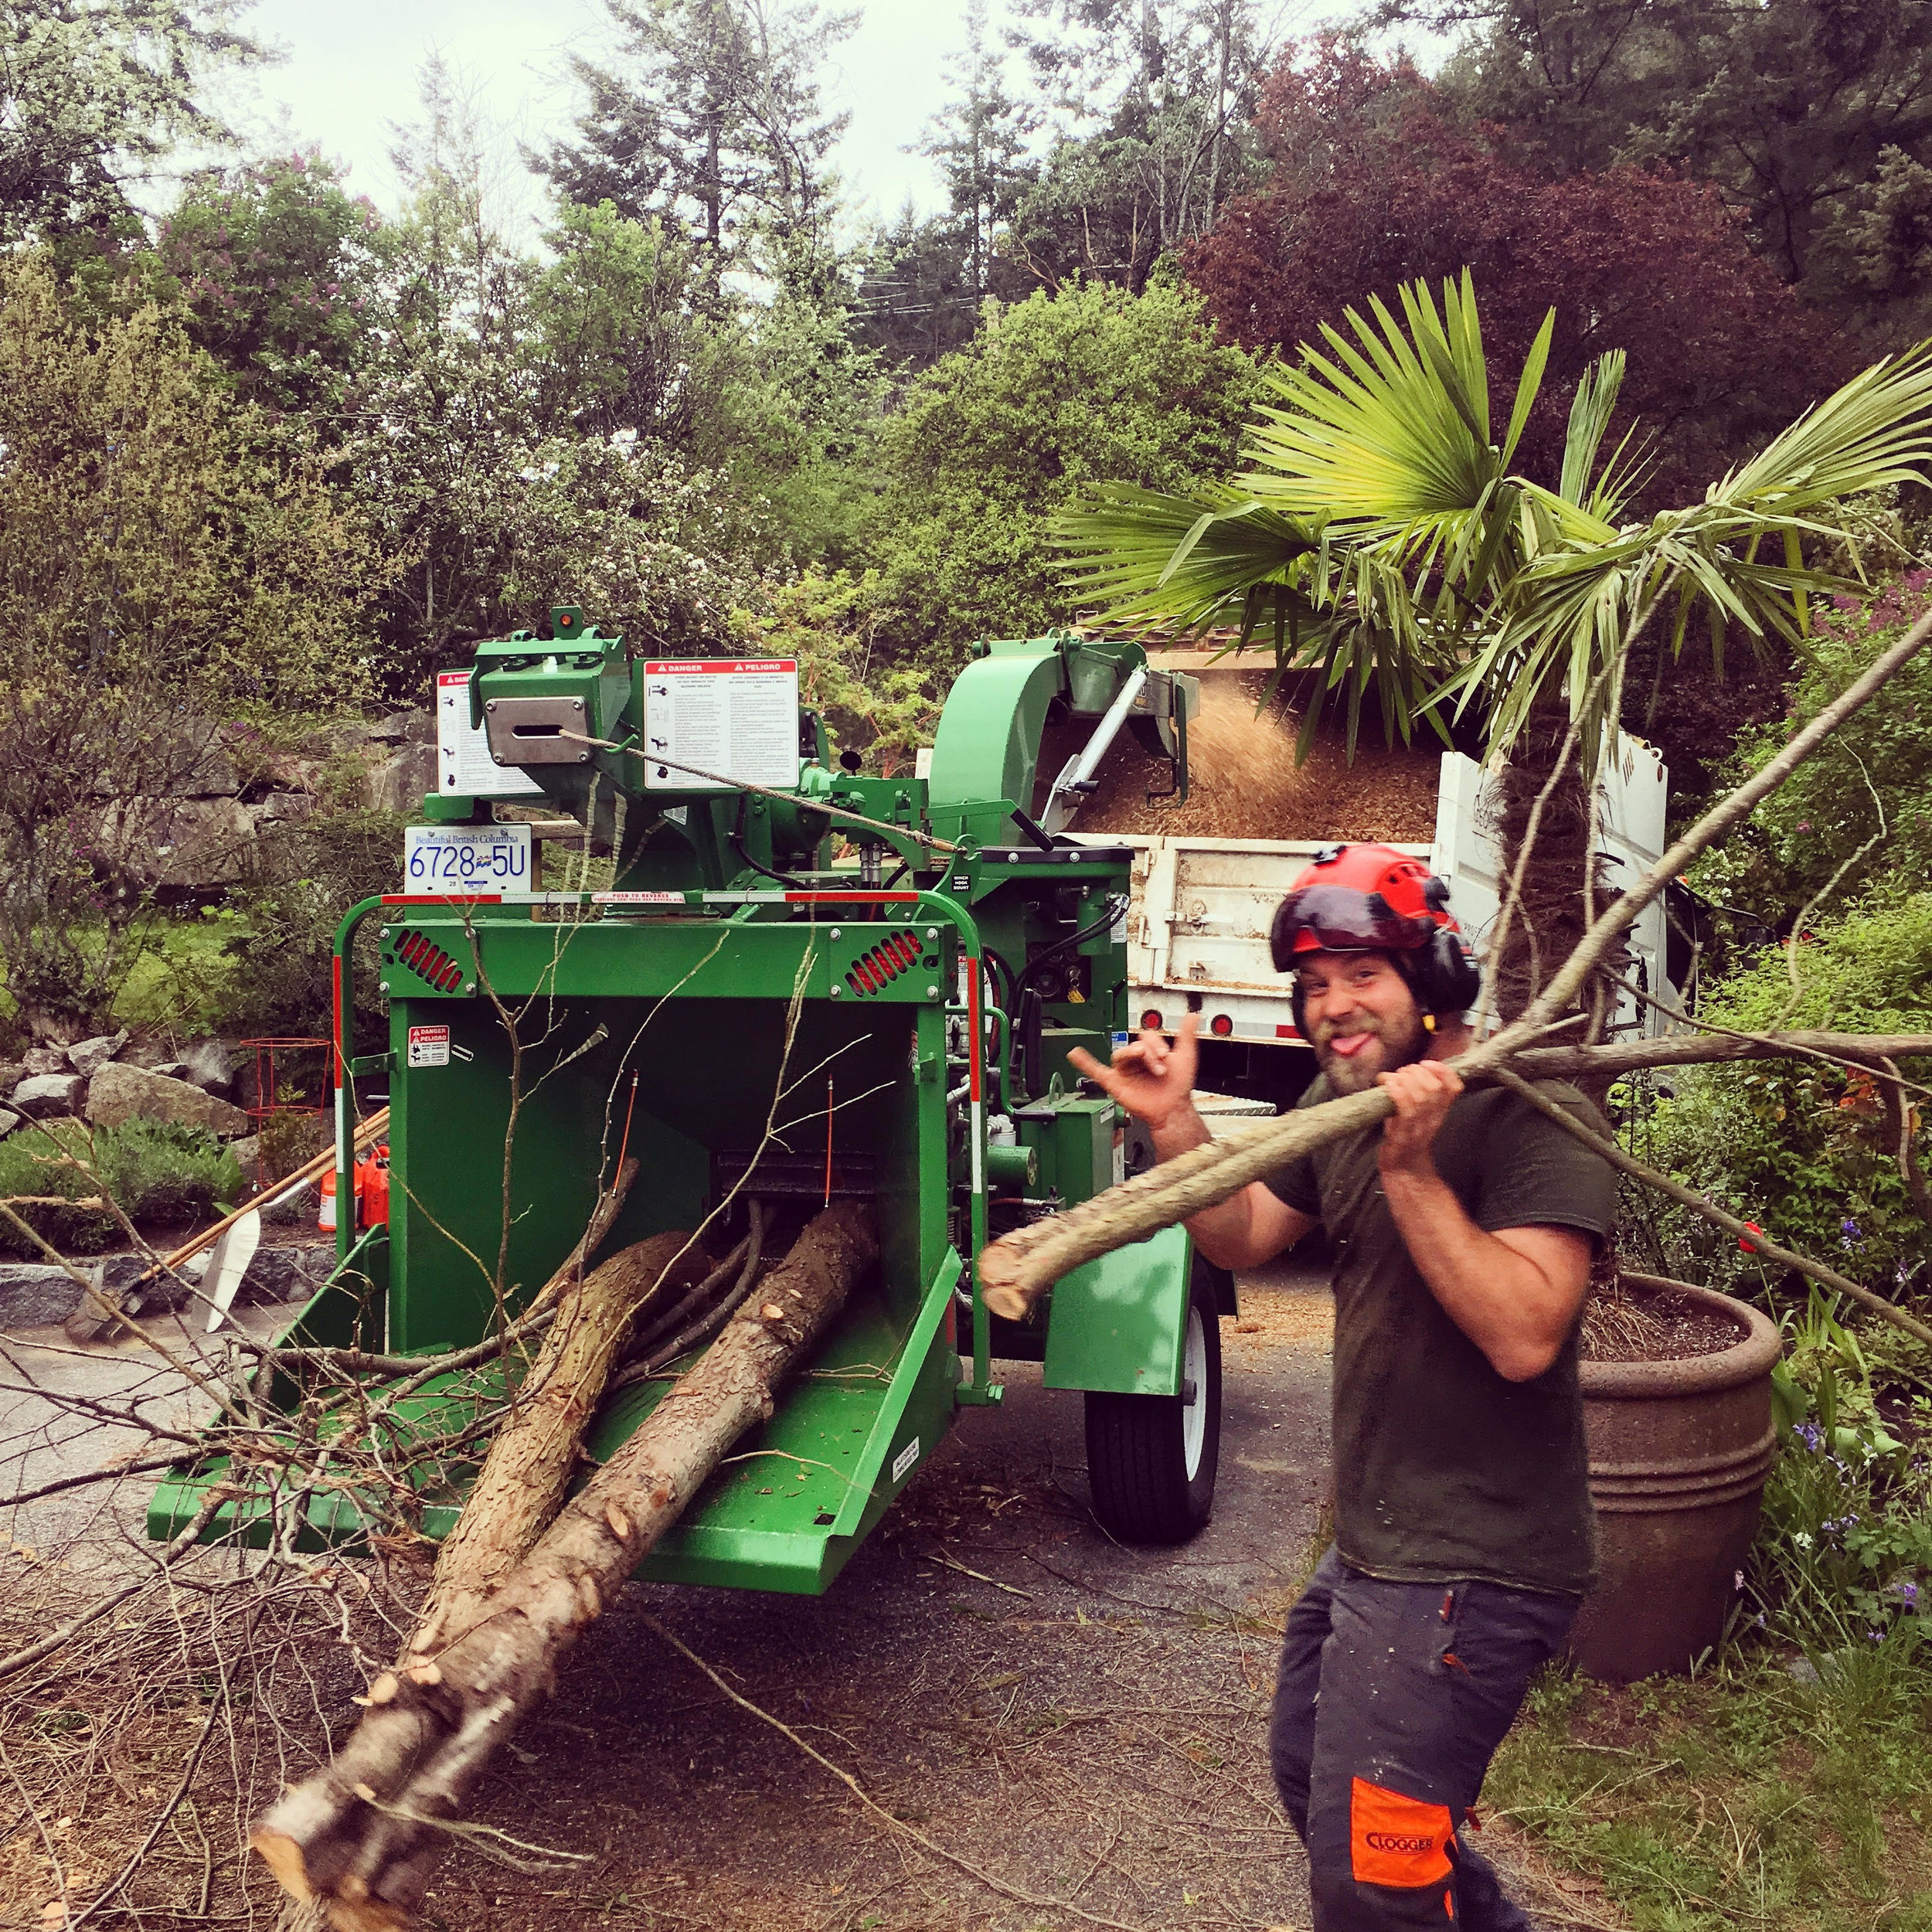 Tree work can be hard, but you need to have some fun.